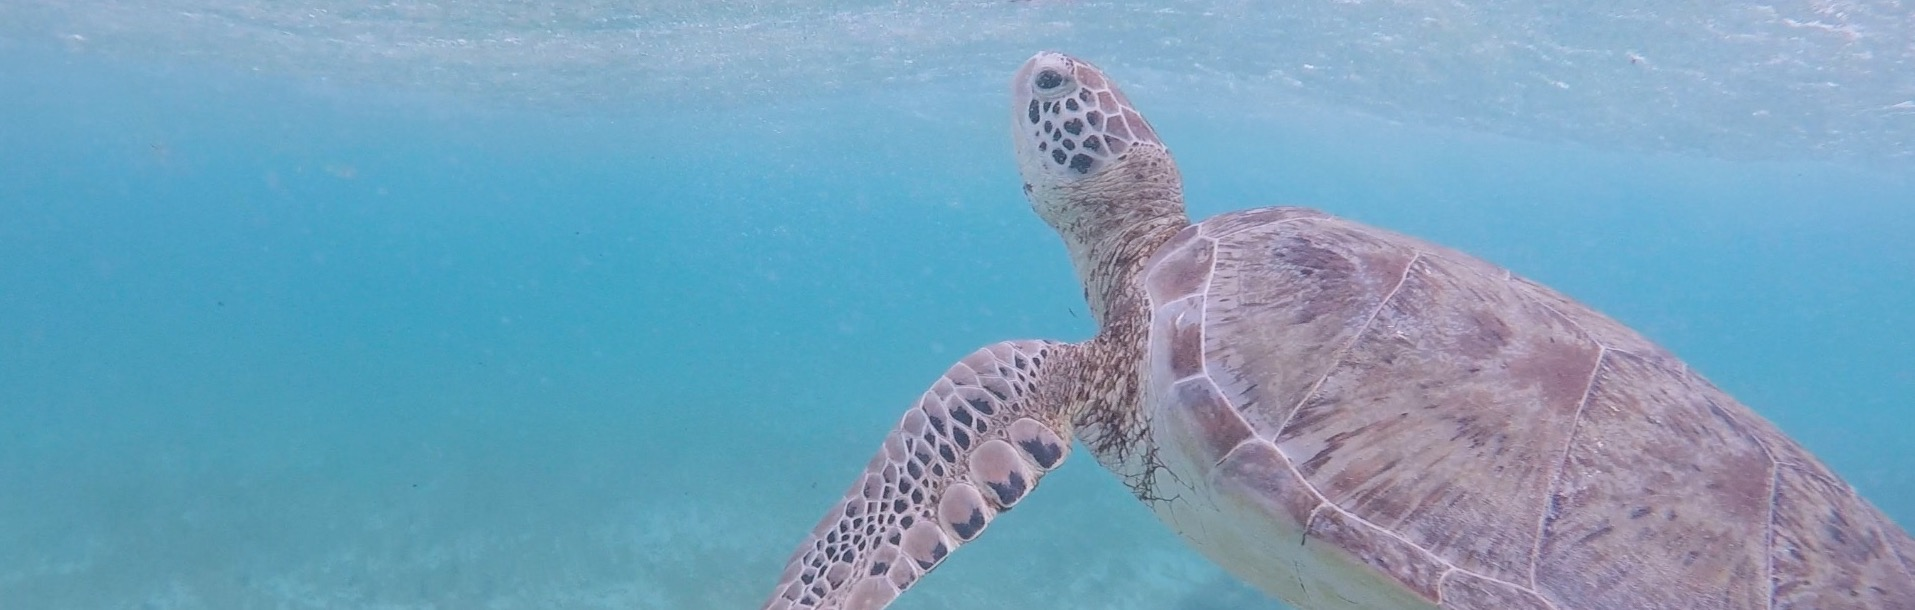 Swimming with a green turtle in Tobago Cays - Caribbean